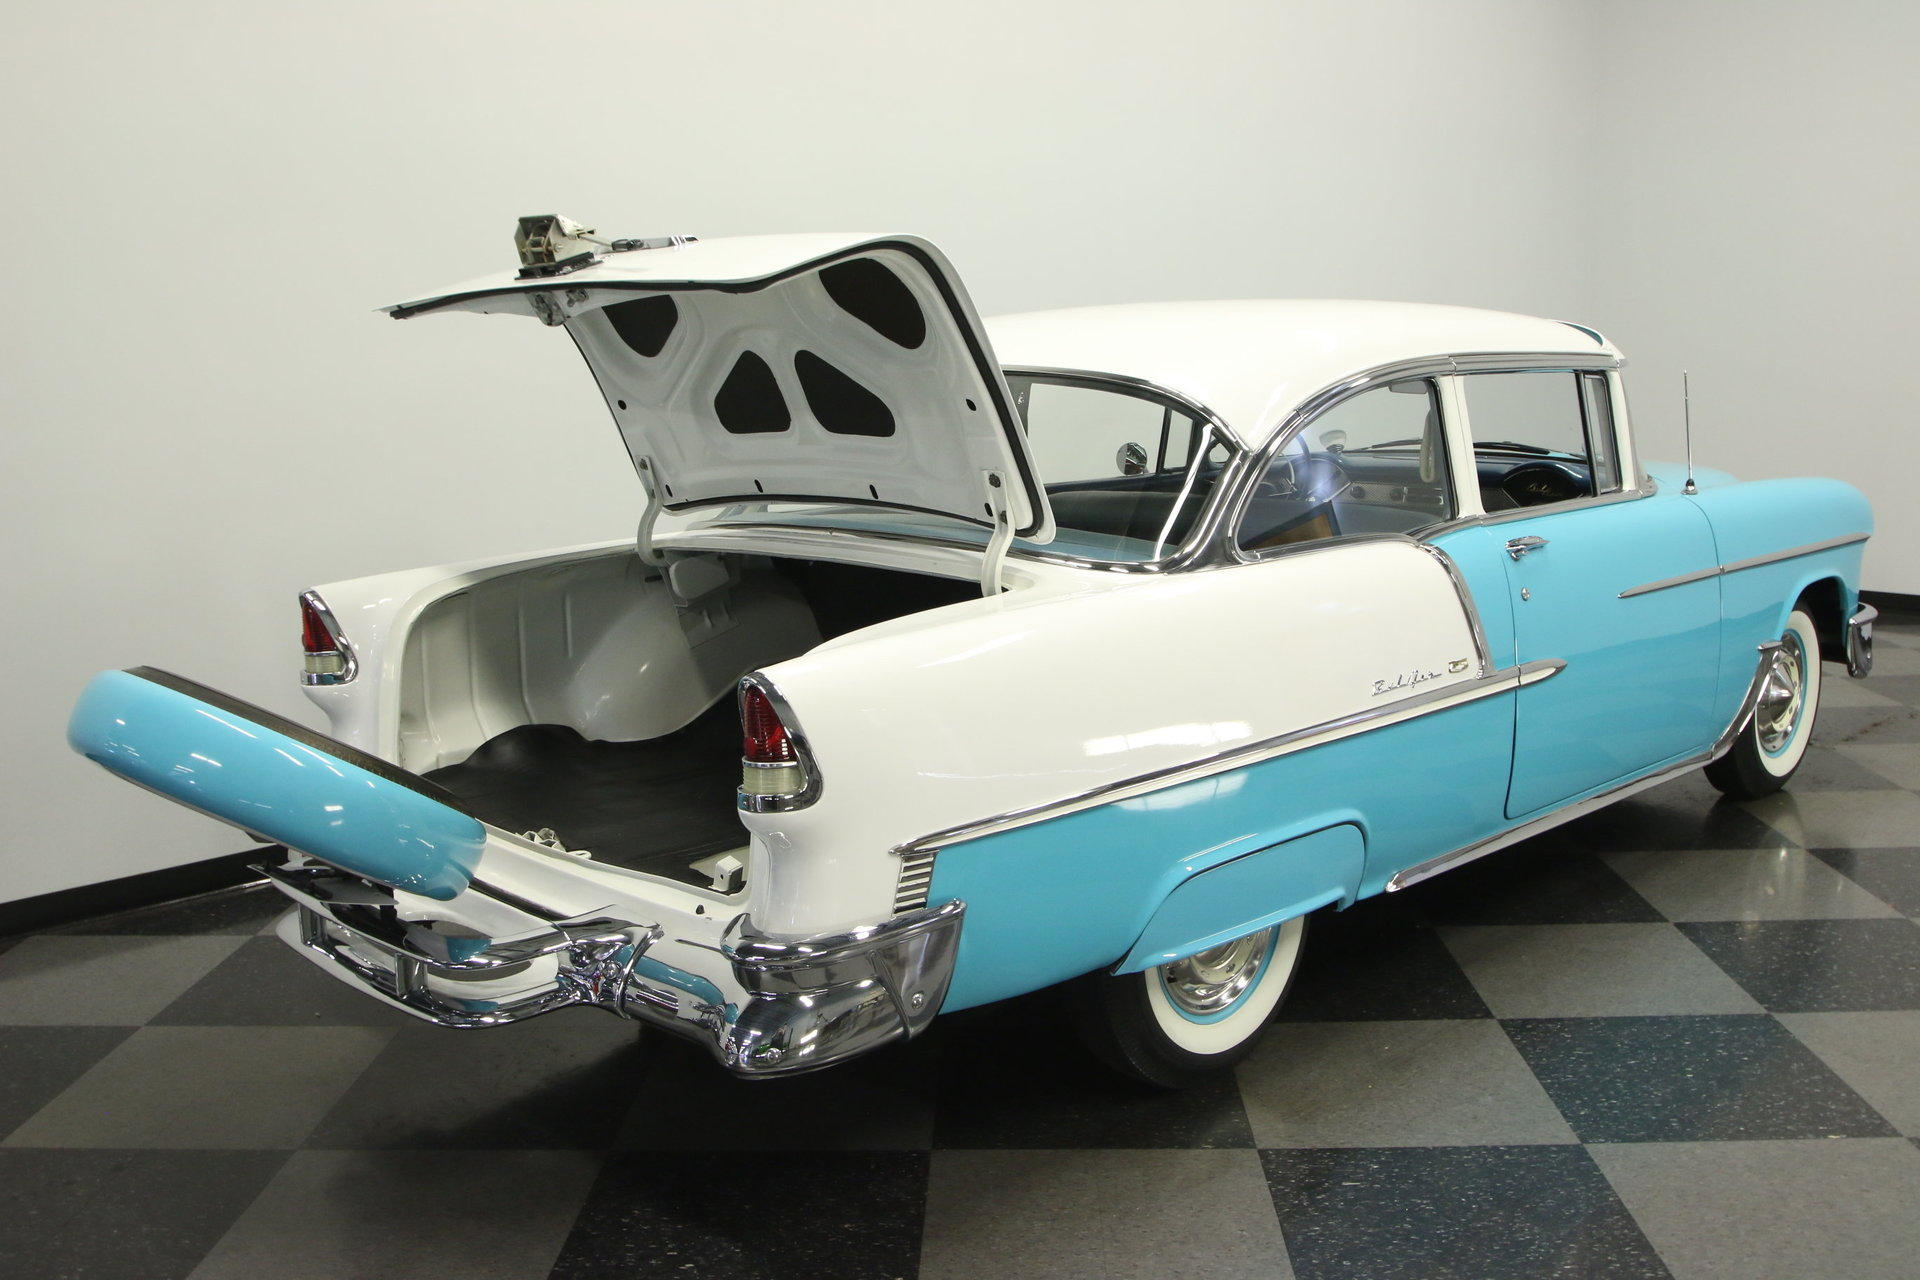 1955 Chevrolet Bel Air Streetside Classics The Nations Trusted 4 Door Spincar View Play Video 360